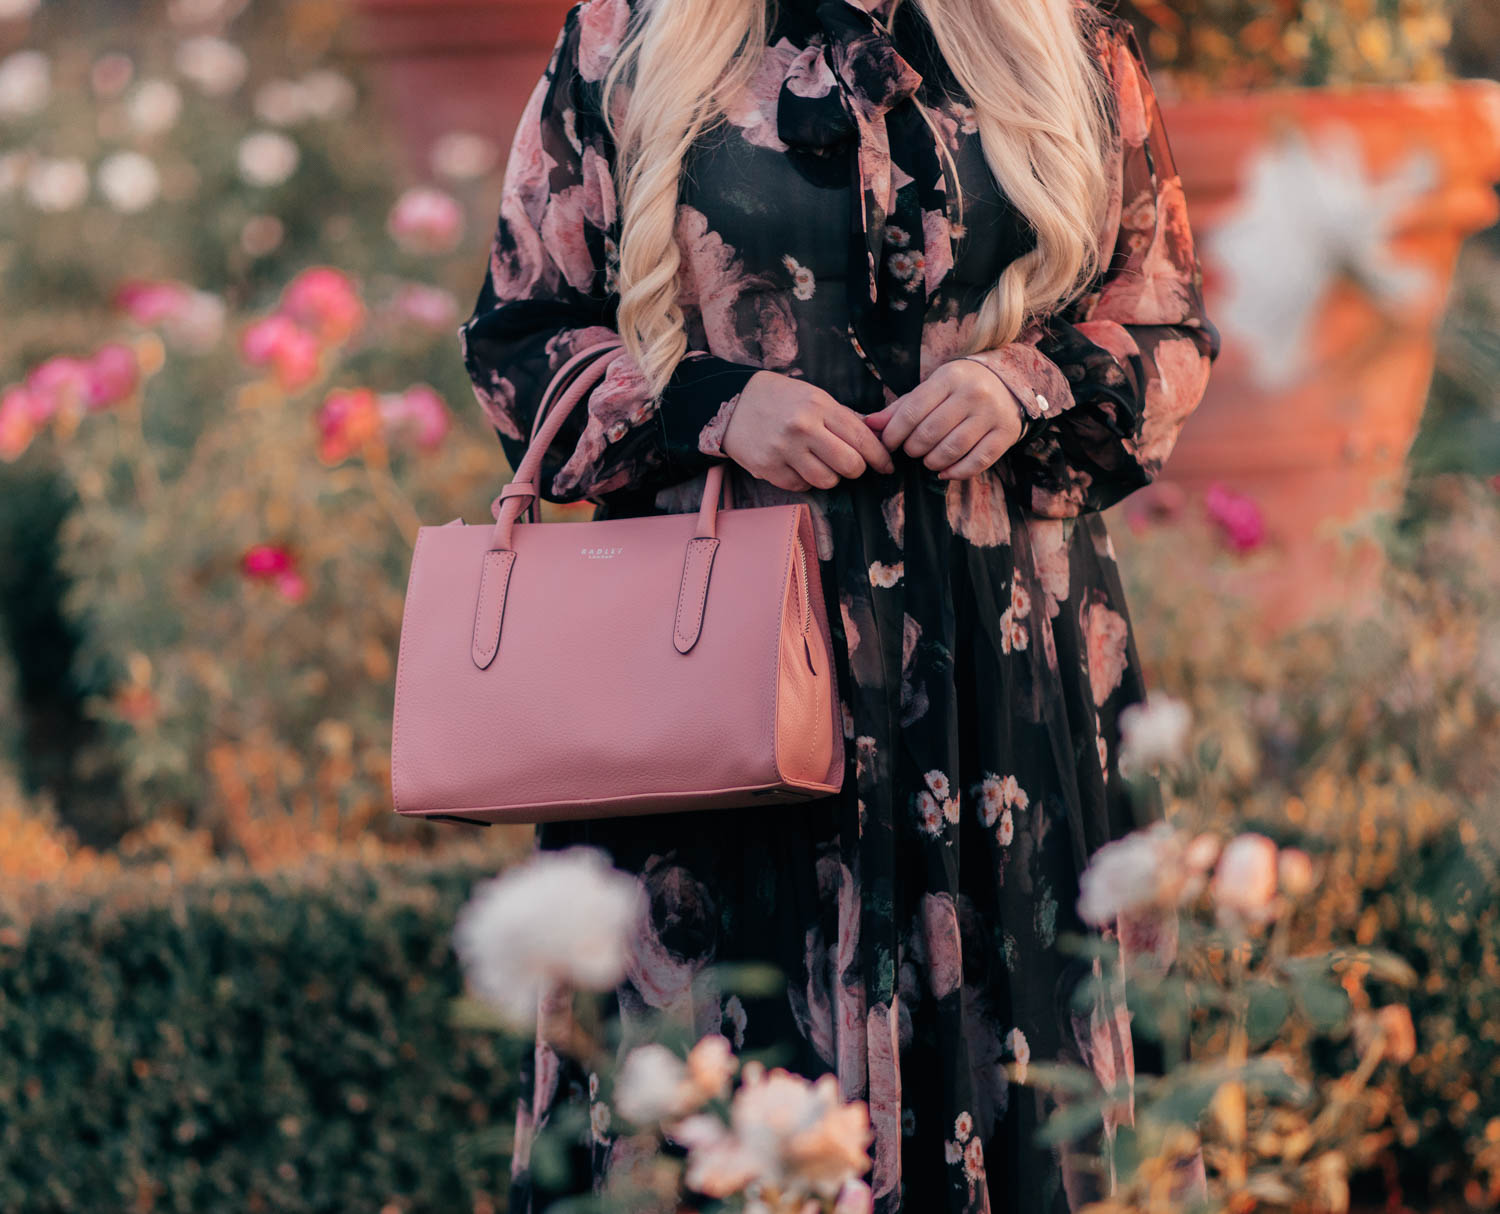 Fashion Blogger Elizabeth Hugen of Lizzie in Lace shares an aesthetic outfit idea with a black floral set and pink handbag for fall